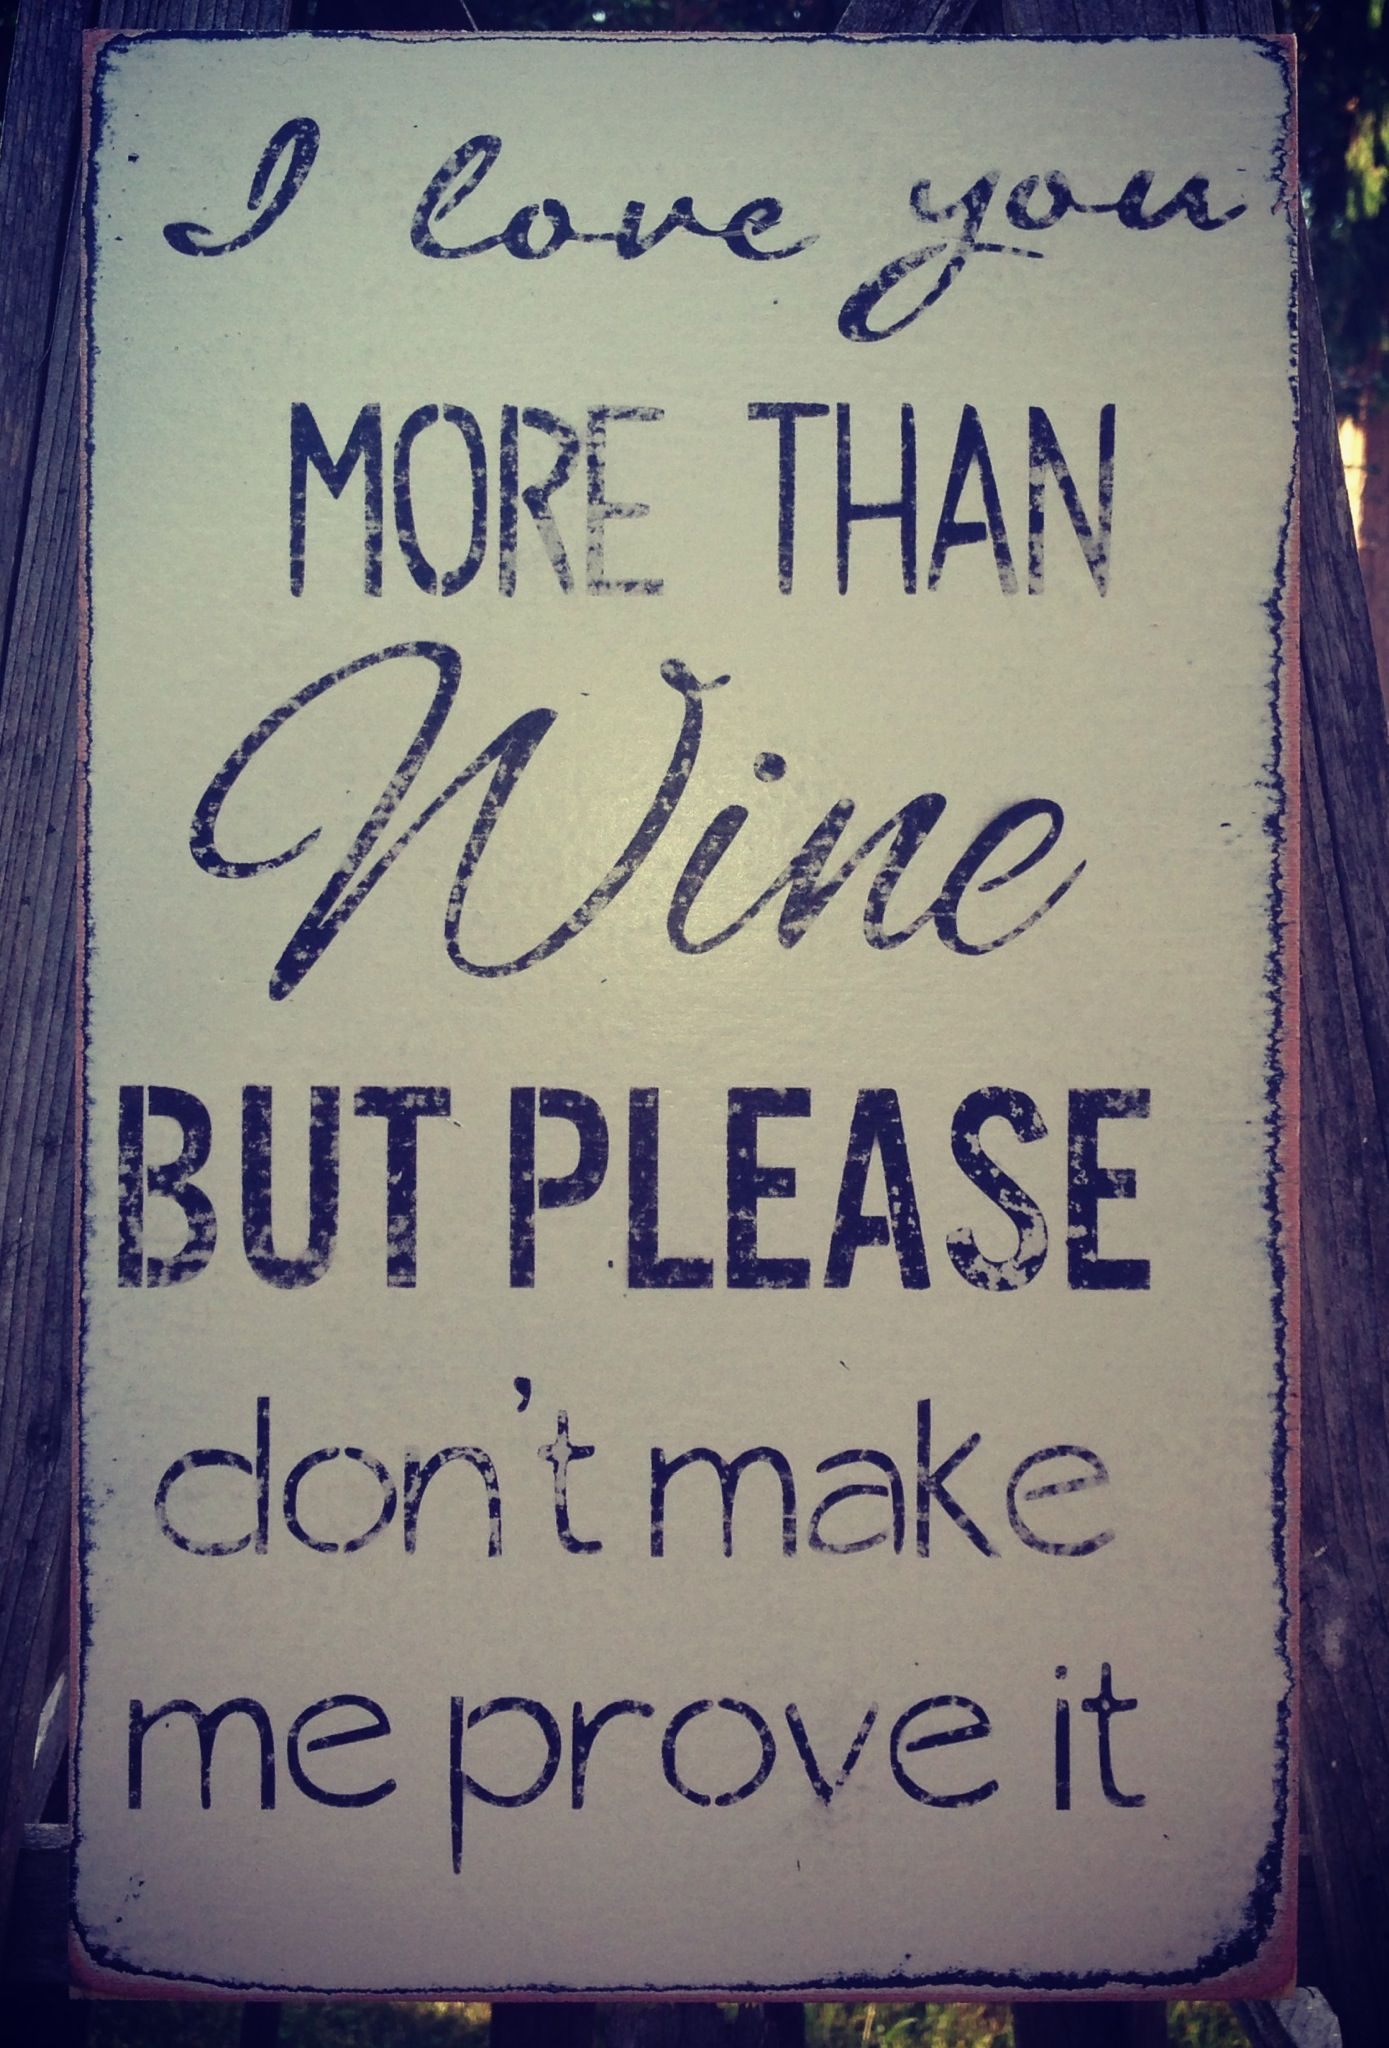 I love you more than wine, but please don't make me prove